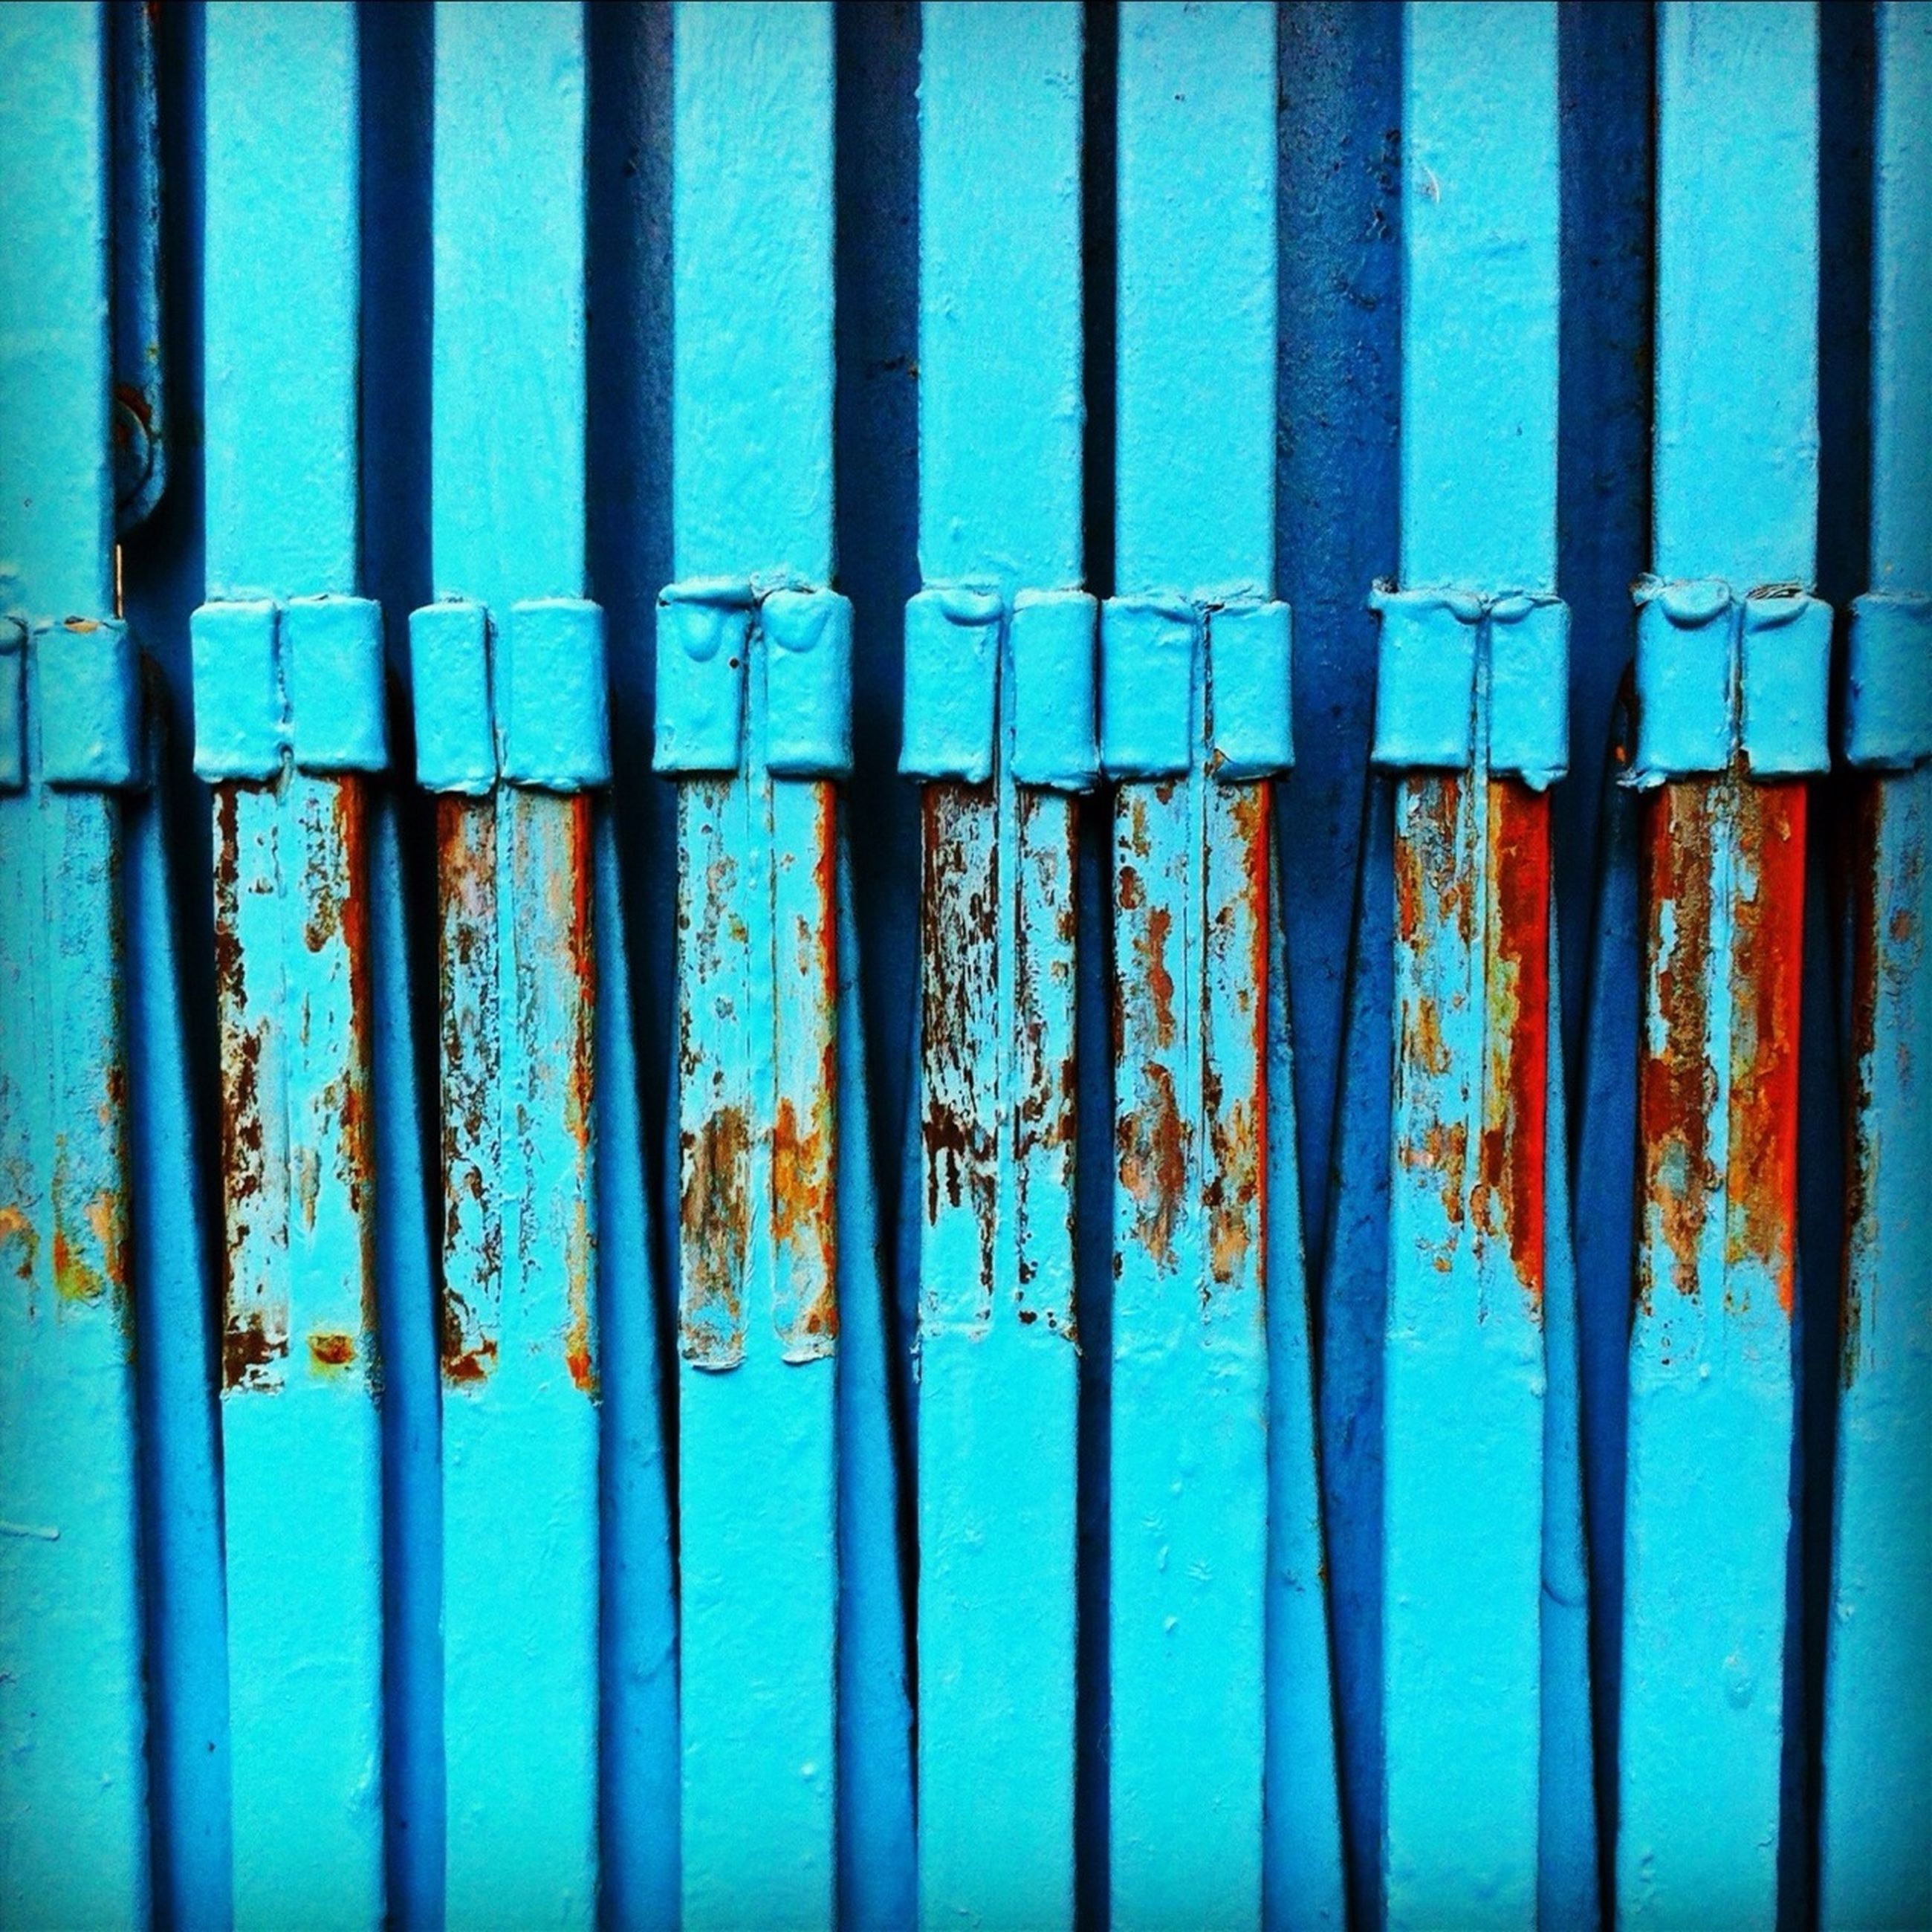 blue, full frame, architecture, built structure, metal, backgrounds, wall - building feature, multi colored, building exterior, protection, fence, pattern, safety, metallic, wall, weathered, rusty, day, graffiti, outdoors